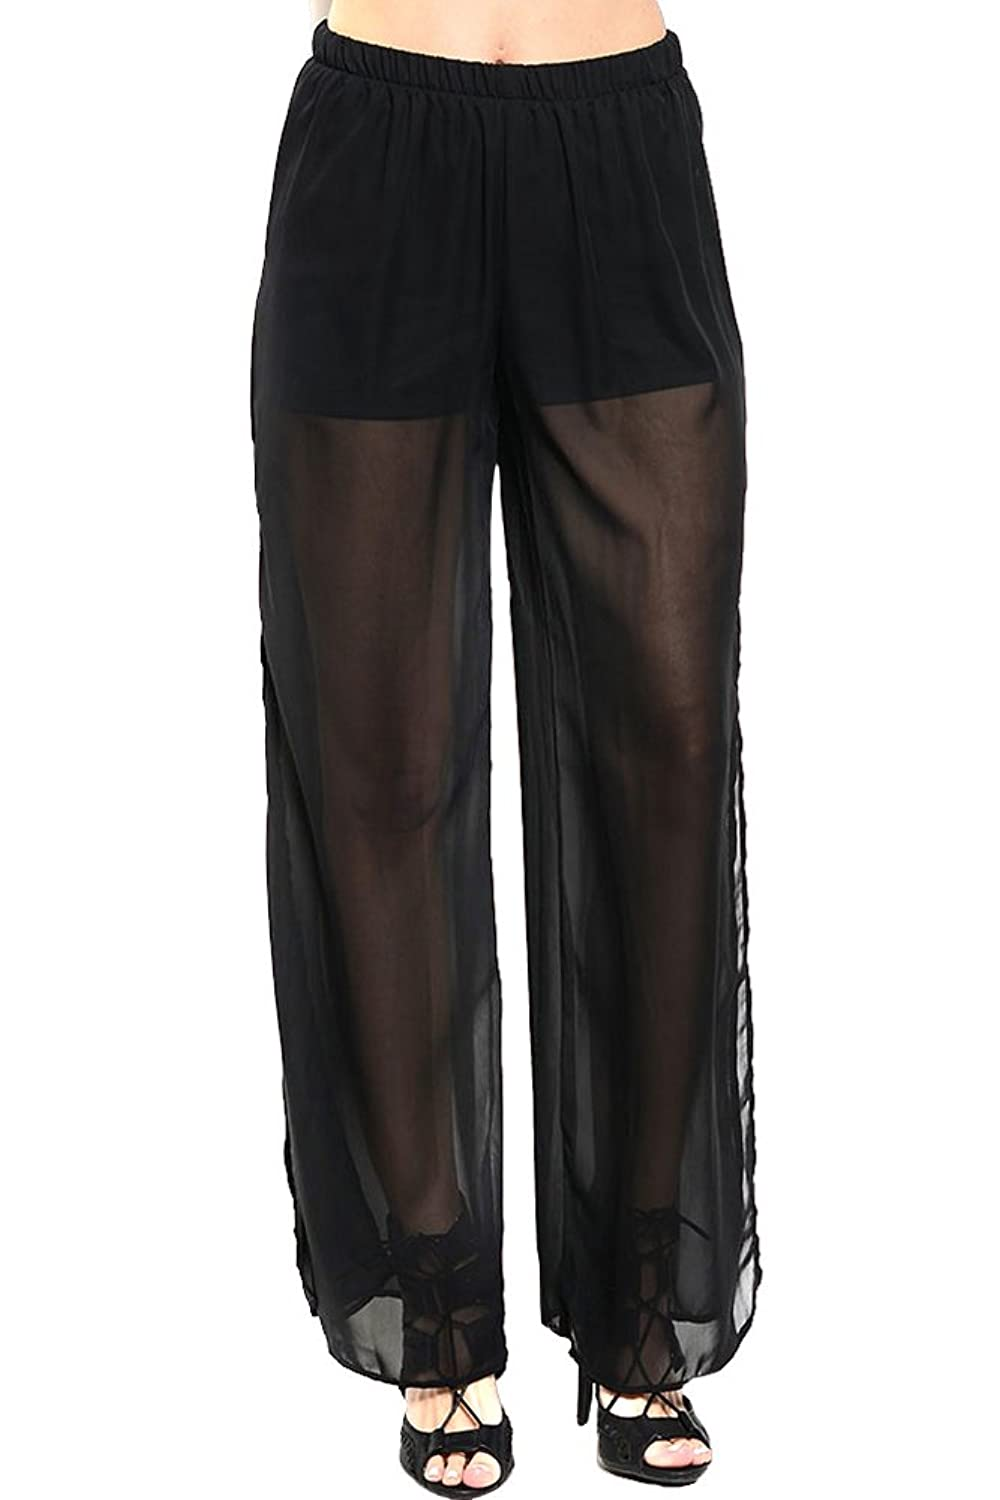 On Trend For Less Womens Partially Sheer Flowing Pants